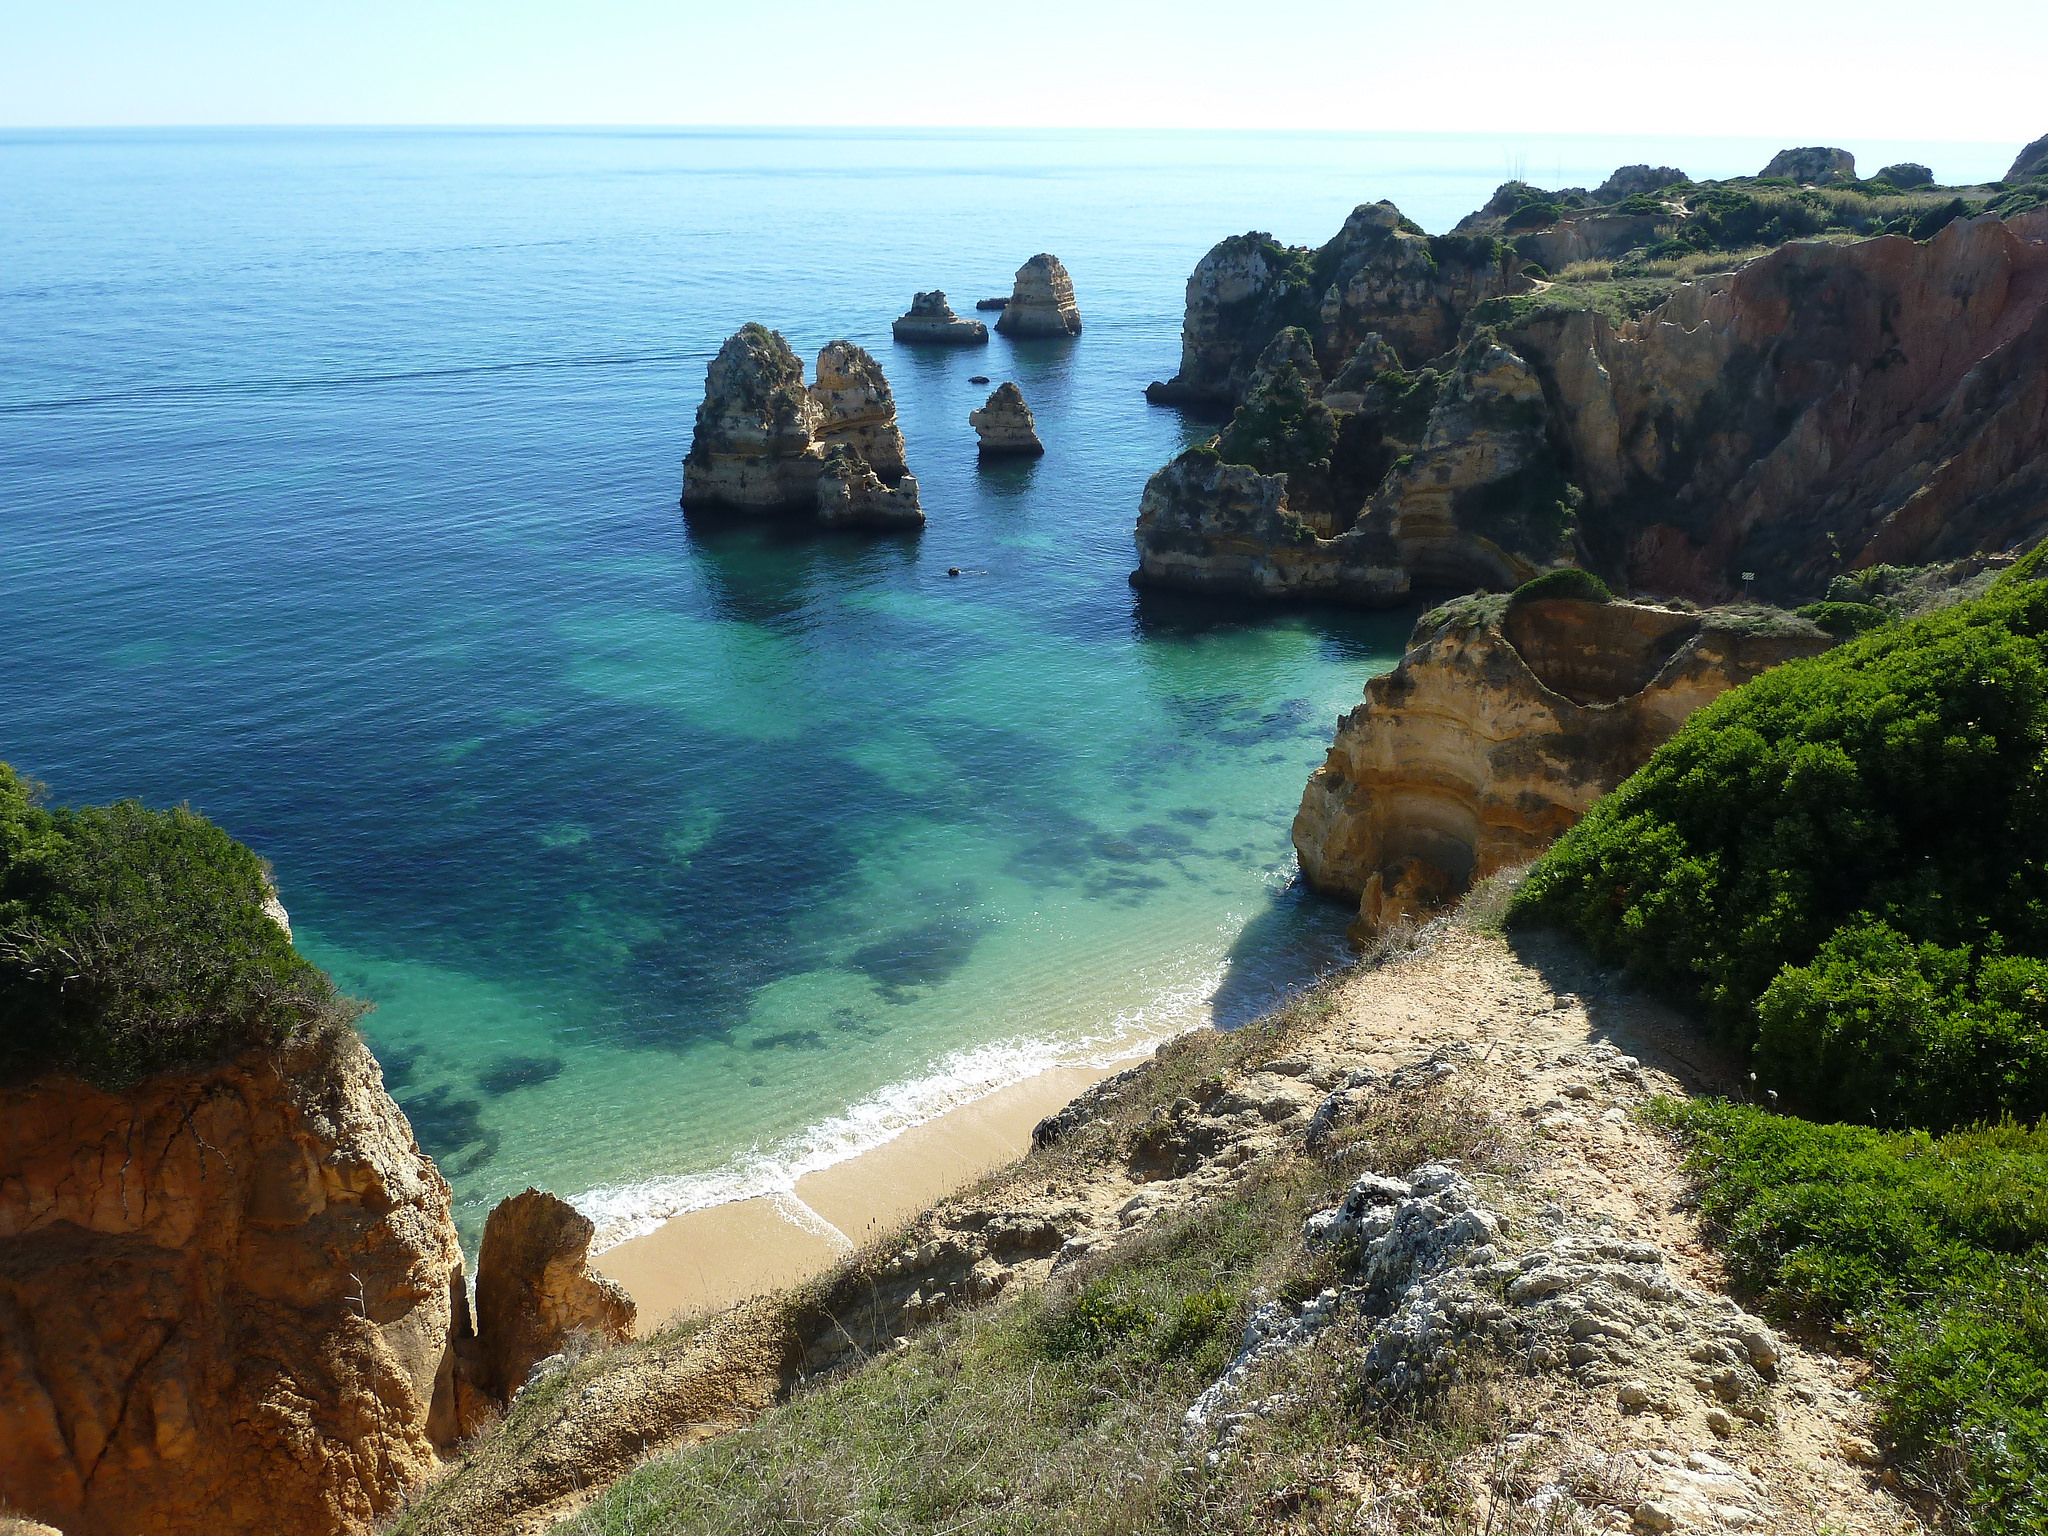 Headwater - Self-guided Walking The Algarve's South West